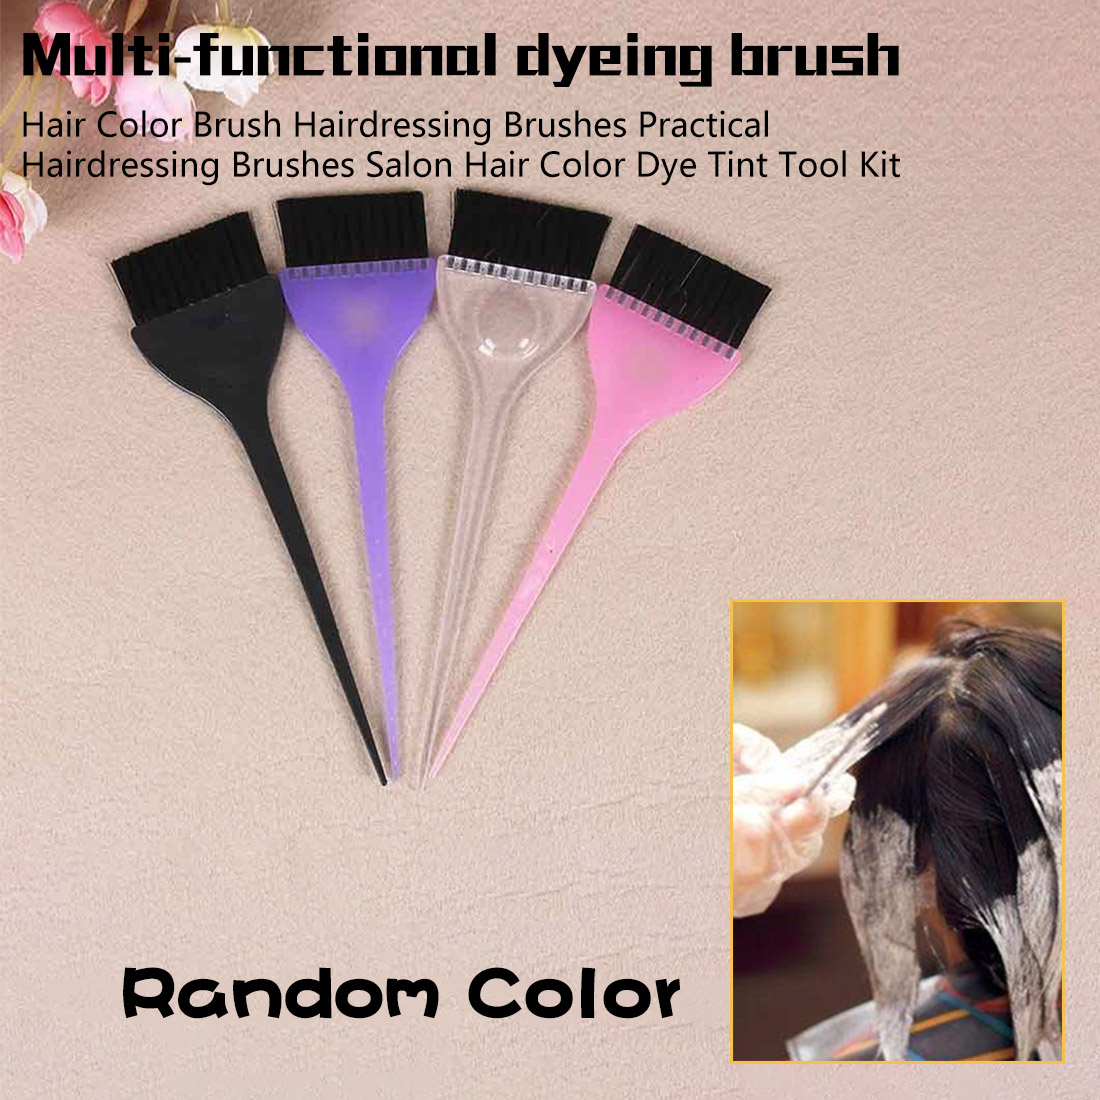 Black Hairdressing Brushes Salon Hair Color Dye Tint Tool Kit New Hair Brush Hair Accessories Drop Shipping